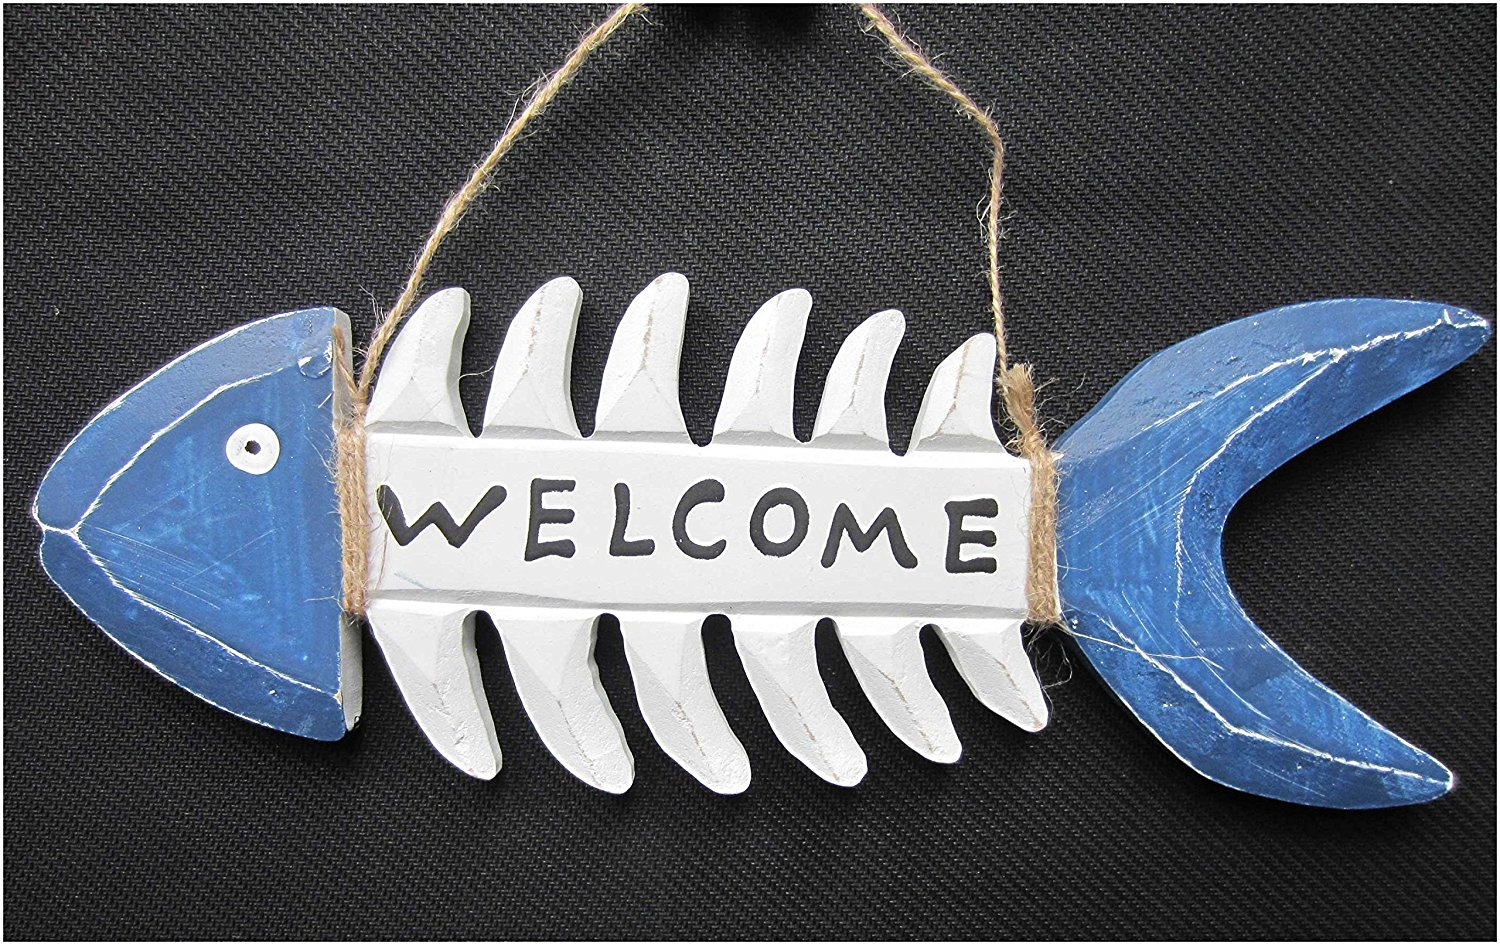 Wooden Welcome Sign For Front Door-Lebeila Welcome Signs For Outside, Wood Pirate Stylish Fish Bone Welcome Decor With Burlap String, Wall Decal Plaque For Garden Entrance Porch Indoor Or Outdoor